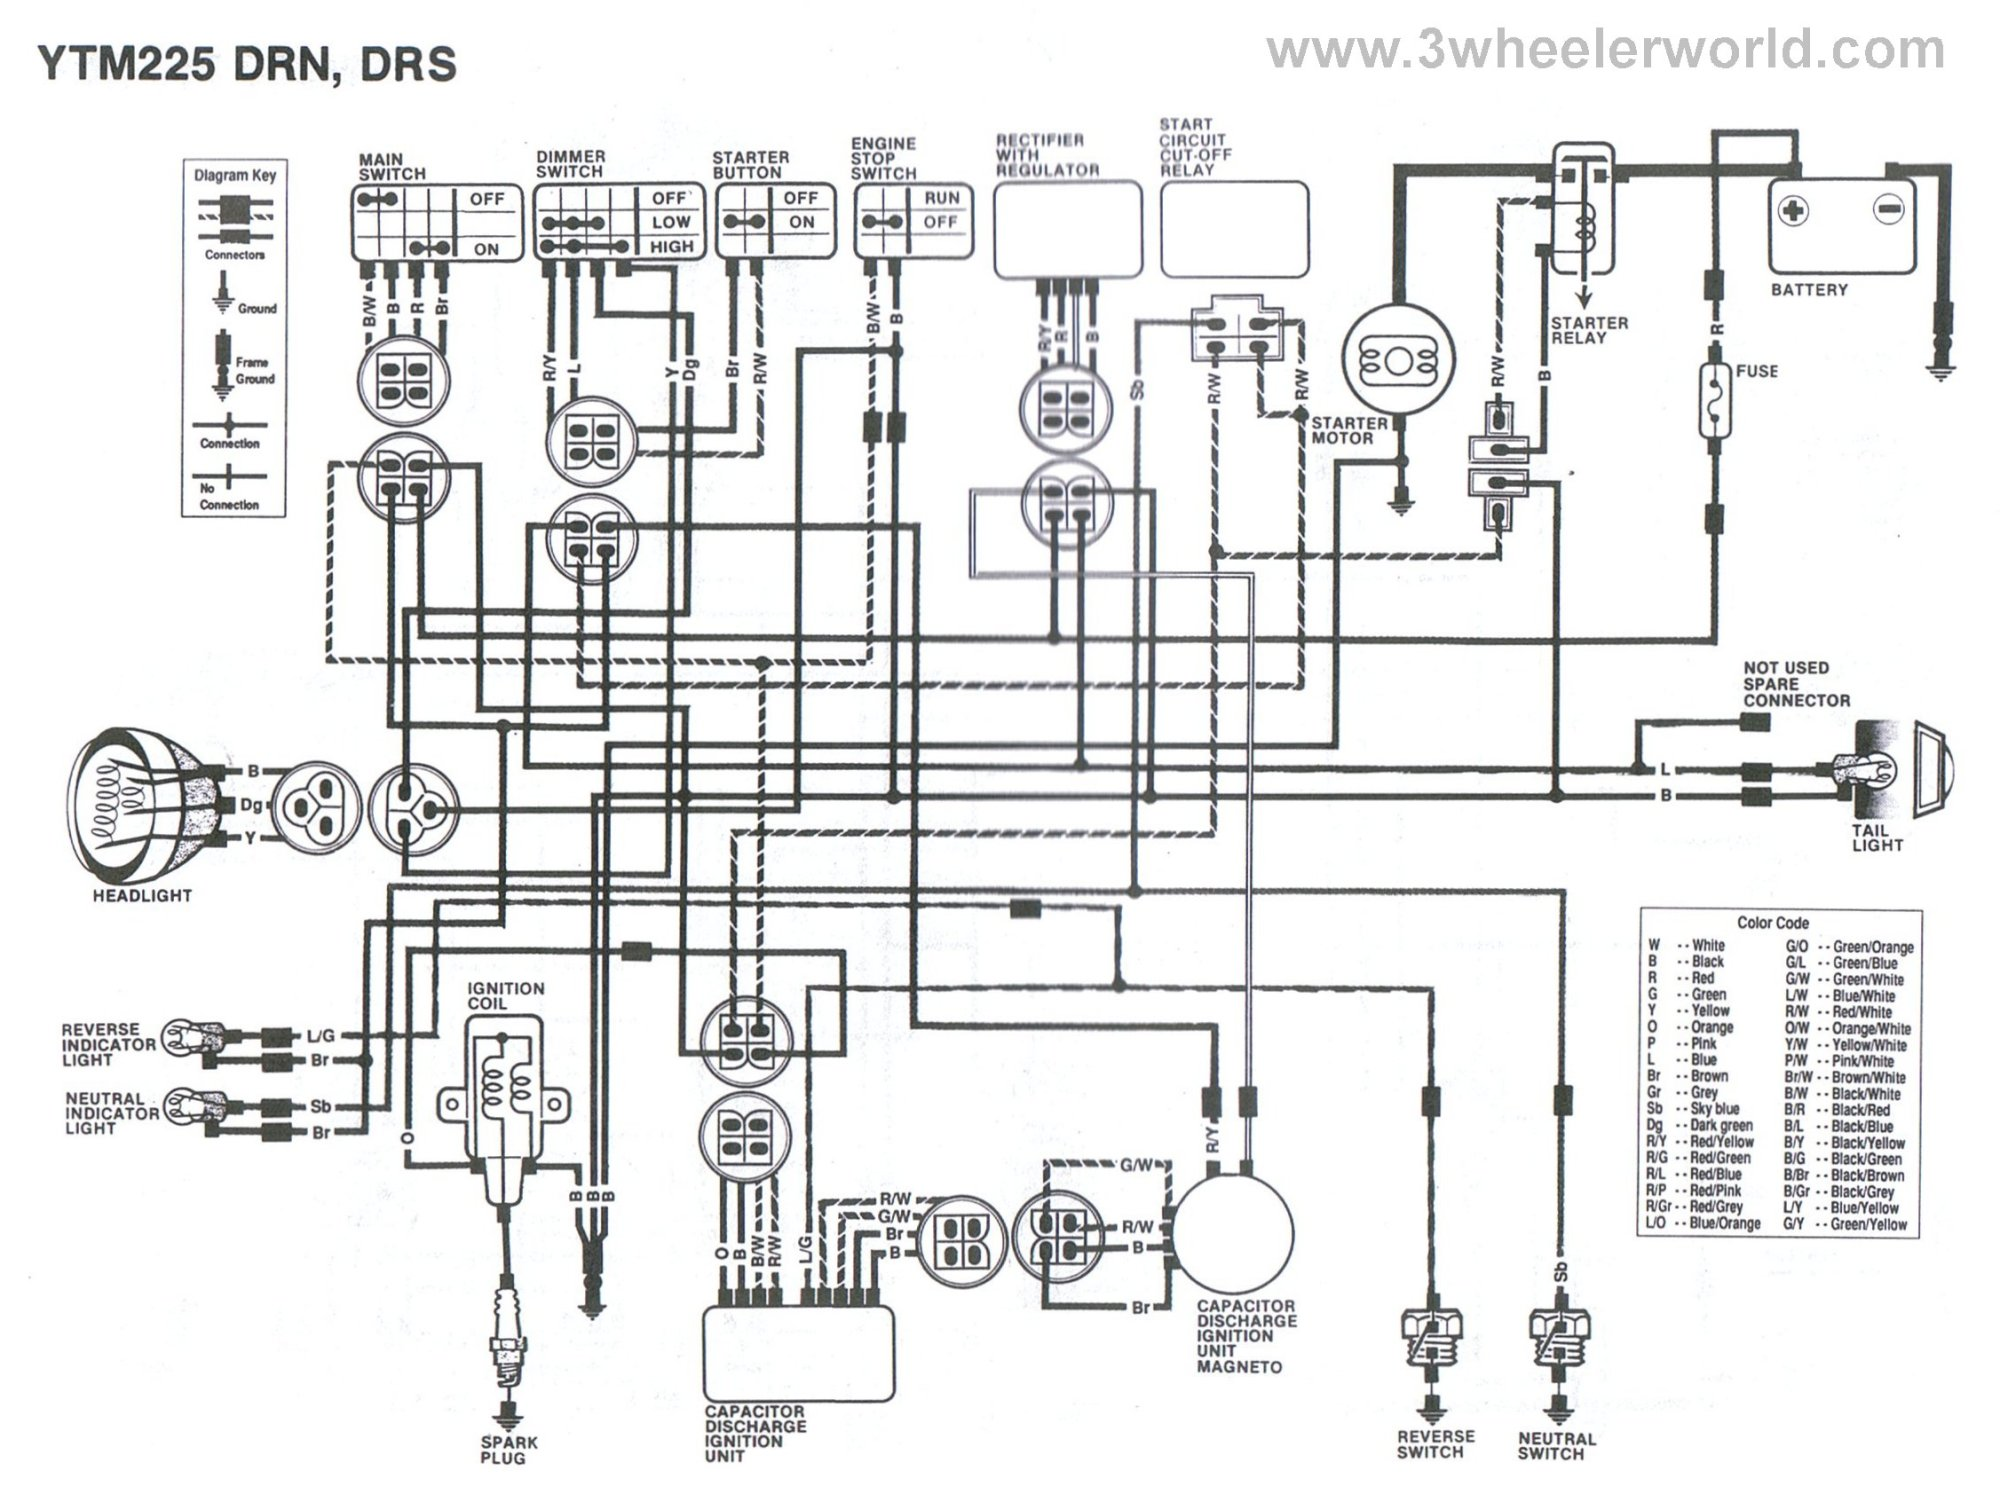 hight resolution of wiring diagrams 1991 yamaha moto 4 atv wiring diagram blog diagram of 1986 moto4 yfm225s yamaha atv generator diagram and